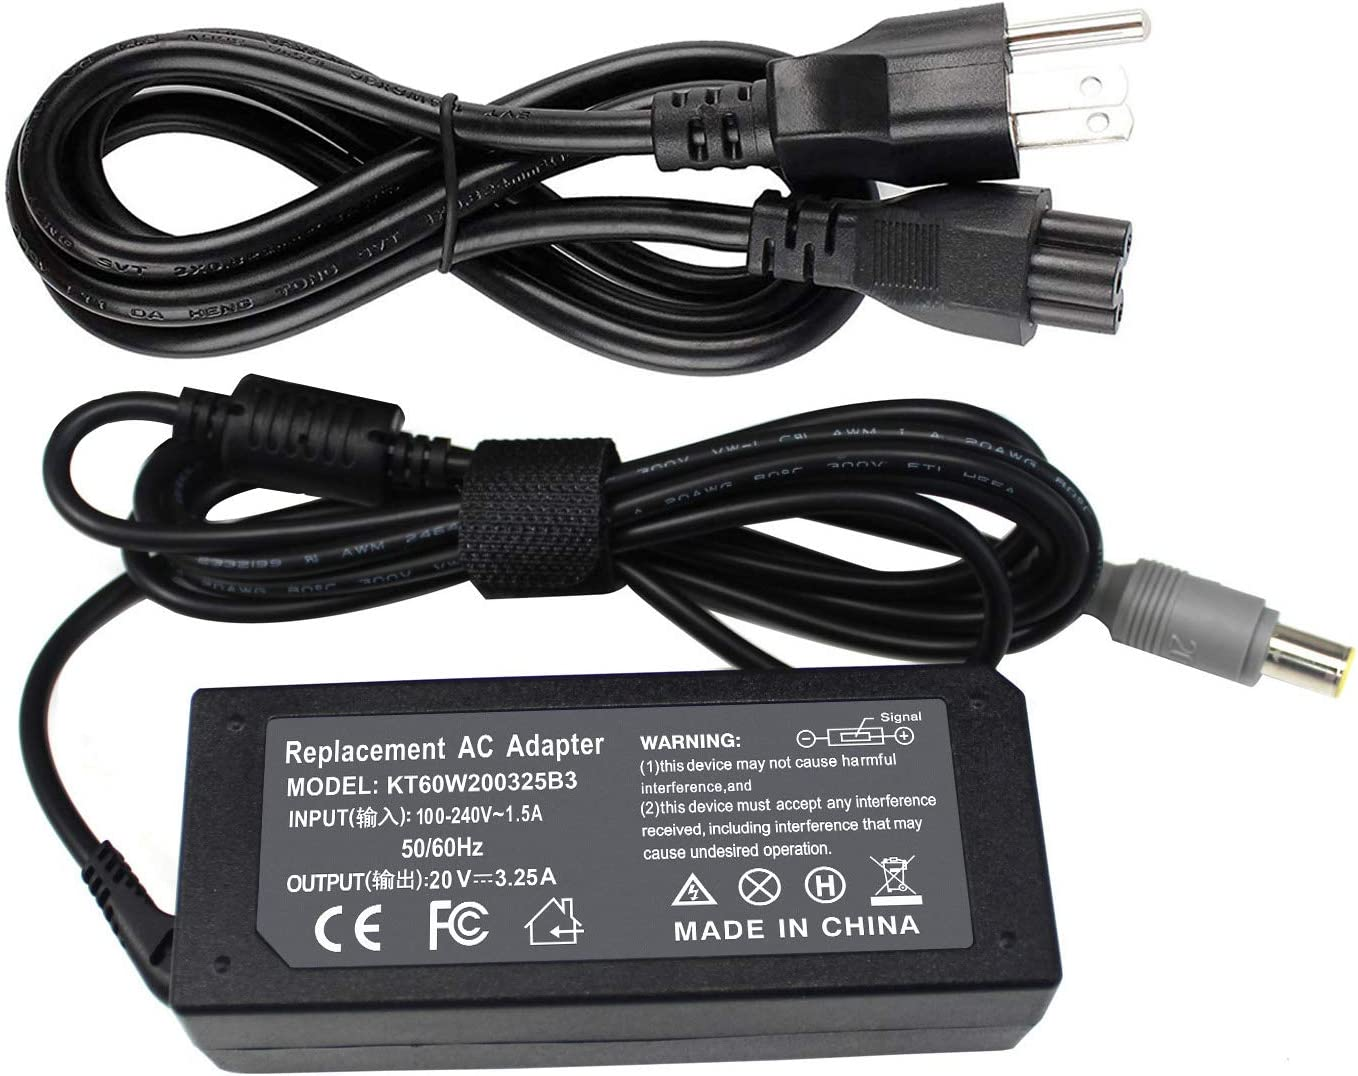 EBOYEE 20V4.5A T430 T520 X230 AC Charger Compatible with Lenovo ThinkPad T60 T61 R61 R60 X60 X61 Z60 T410 T420 T420S T430S T530 W530 X200 X300 E420 E430 E520 E545 L430 S230U 40Y7660 PA-1900-171 Laptop